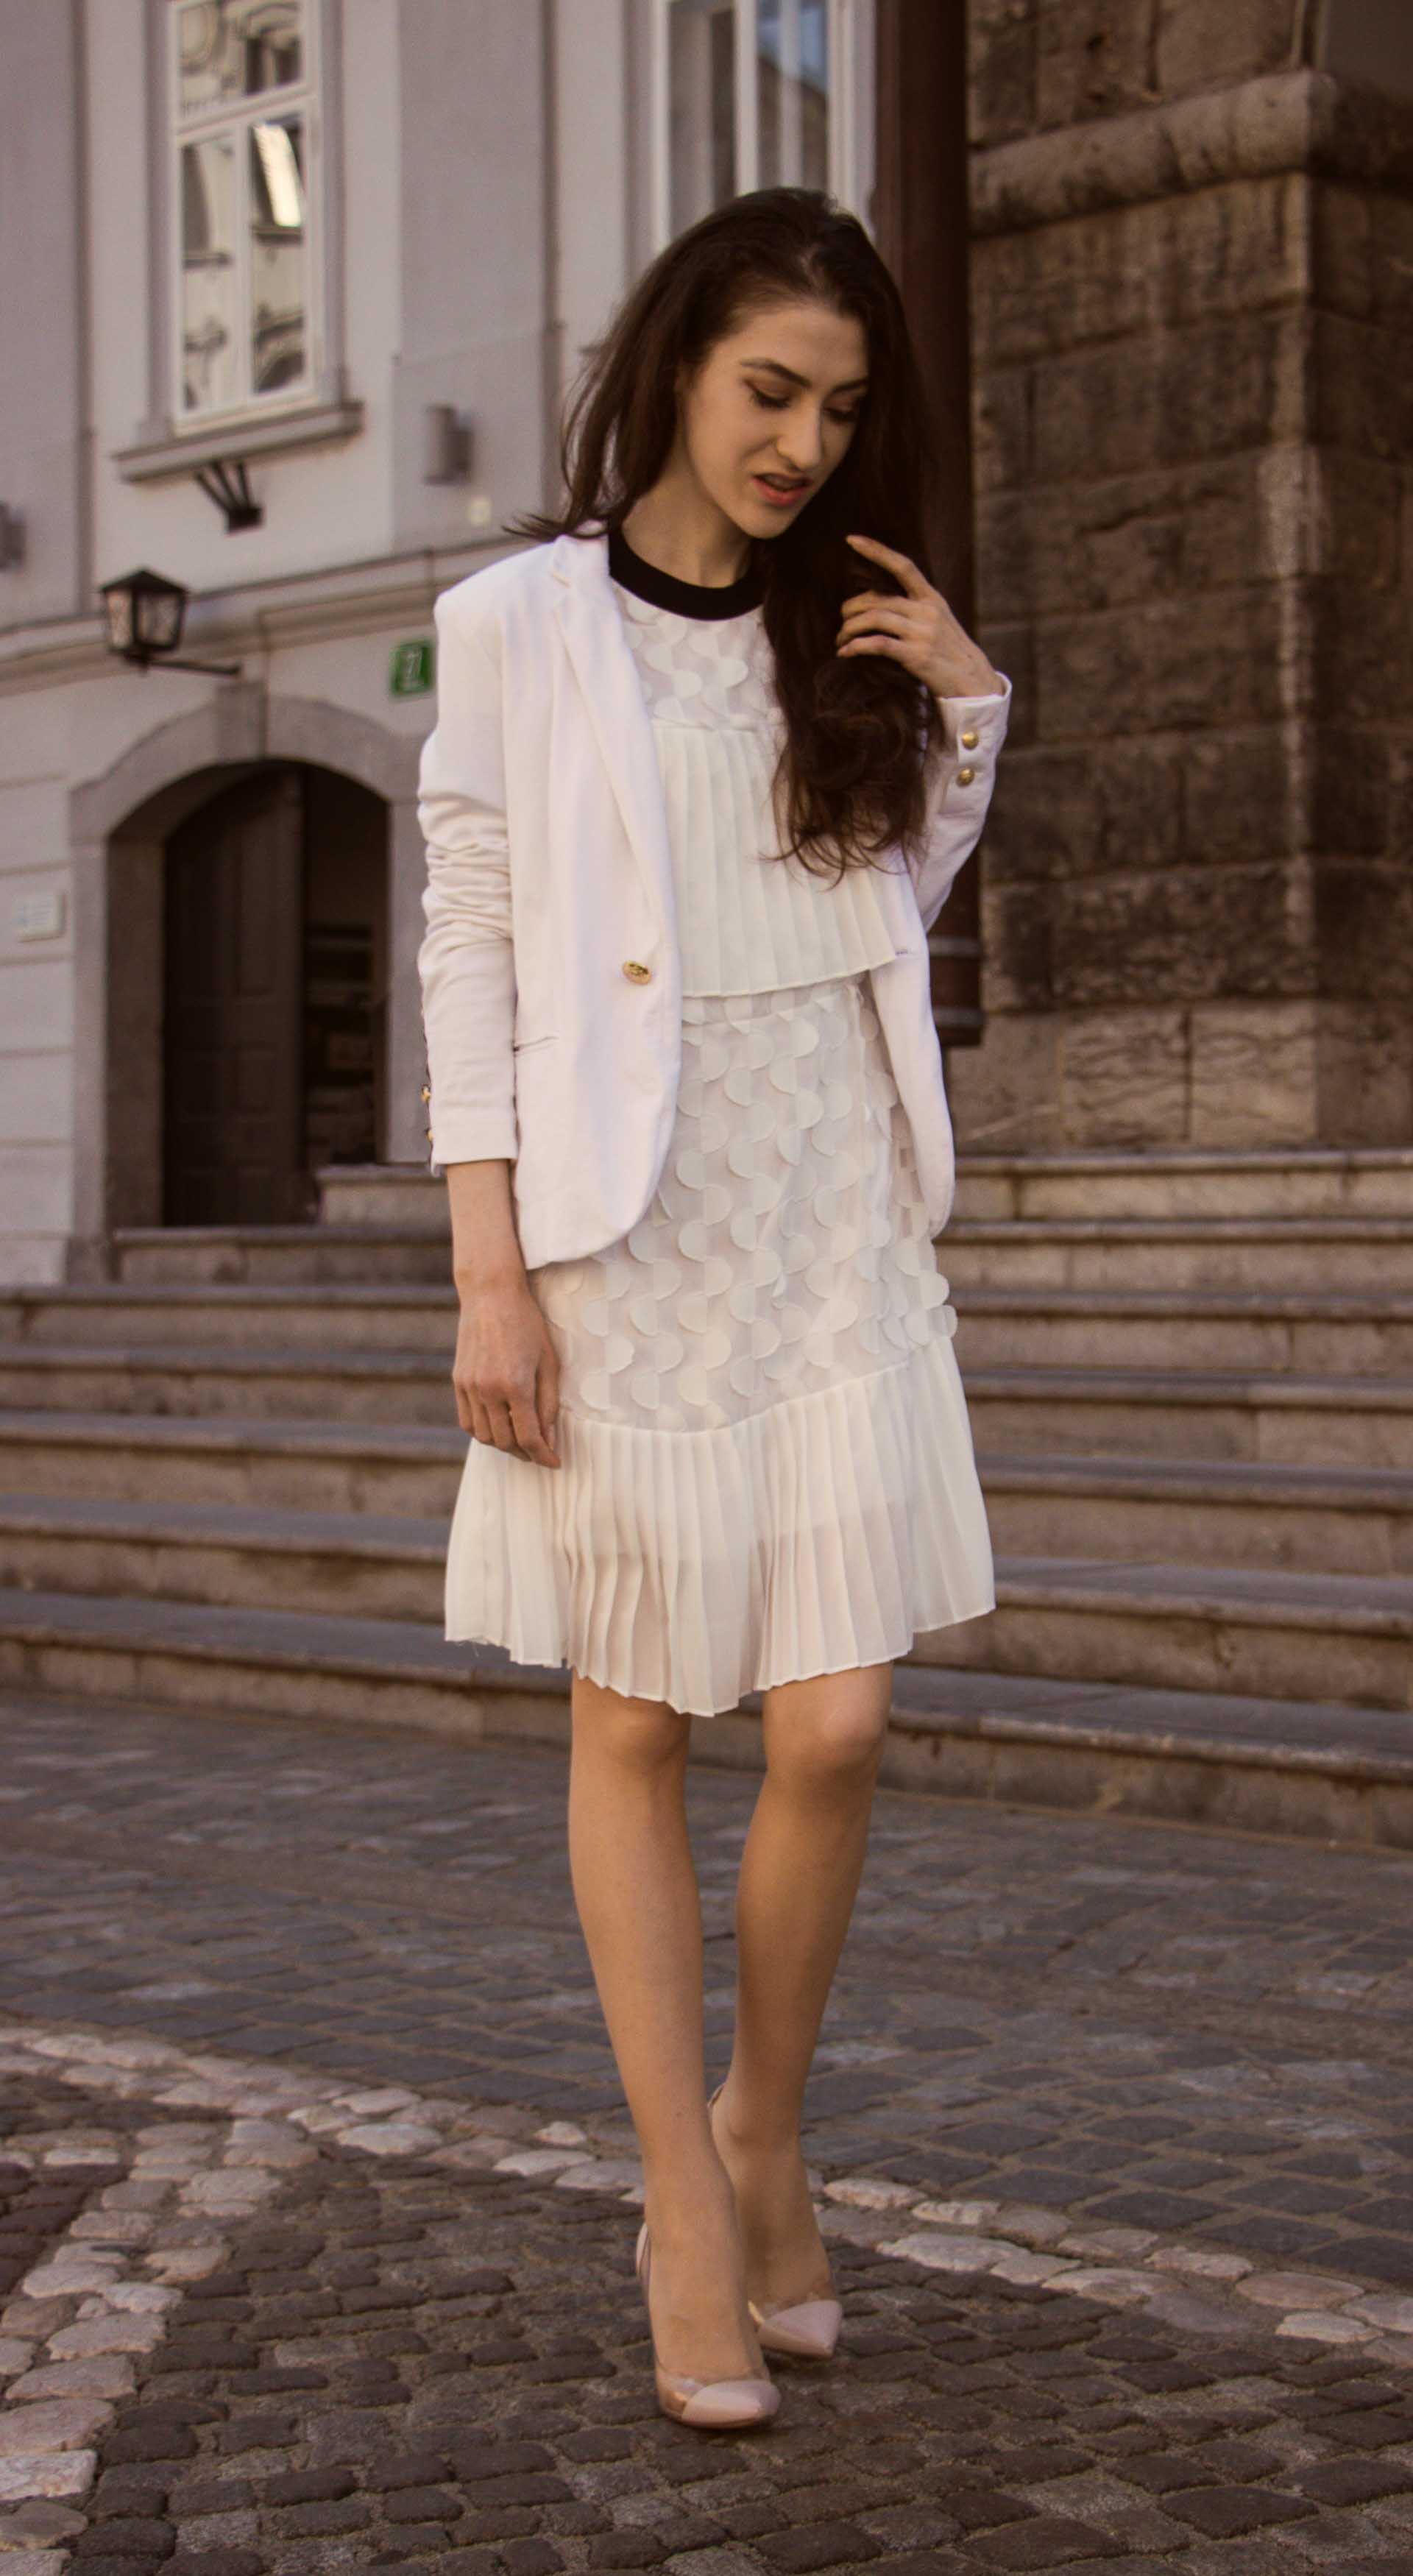 Veronika Lipar Fashion Blogger of Brunette from Wall Street wearing Storets little white dress, white Balmain blazer, Gianvito Rossi pumps for wedding at city hall in Ljubljana